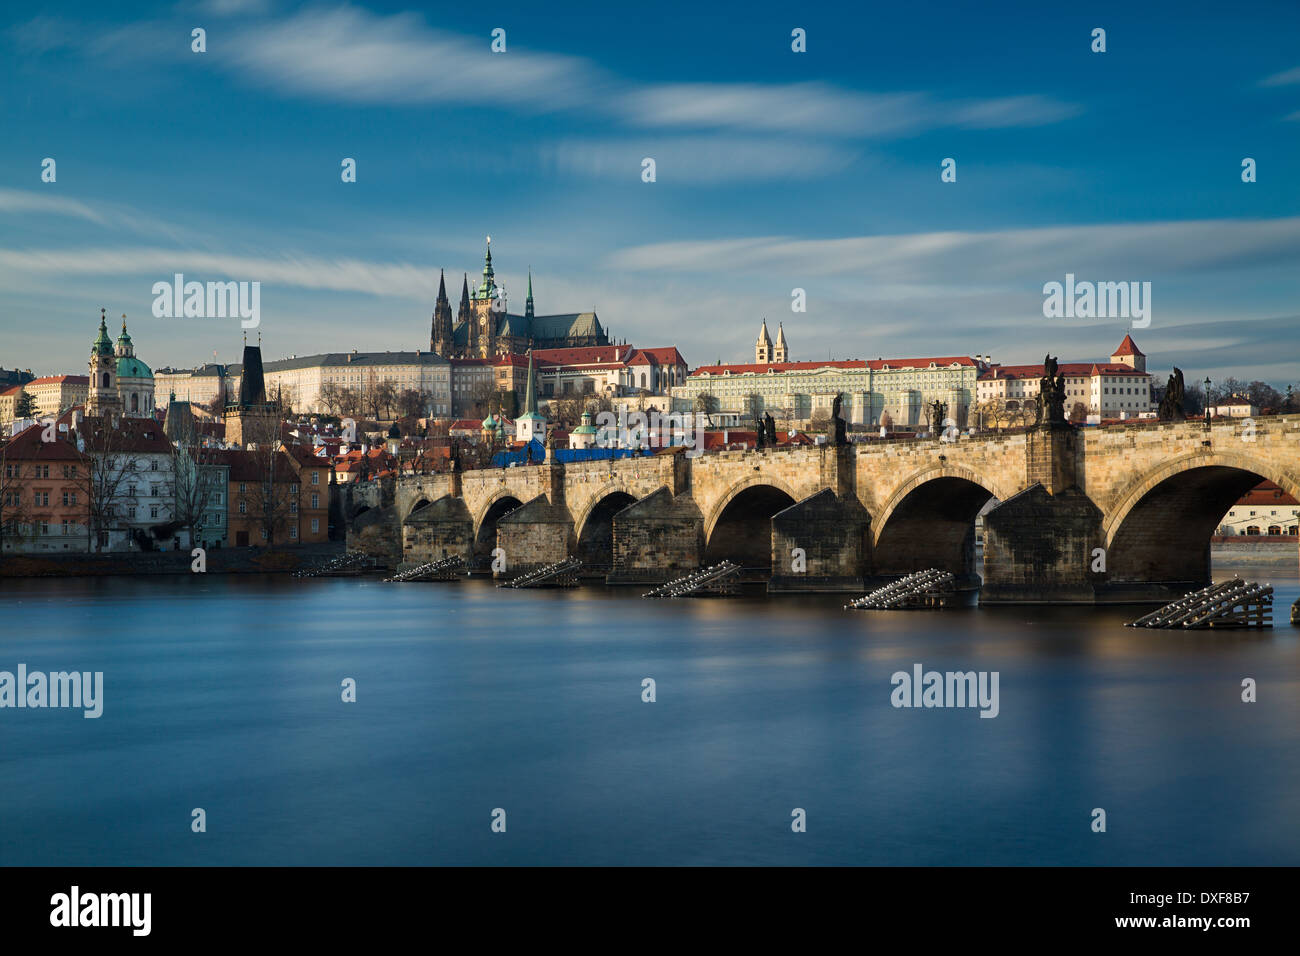 the Castle District, St Vitus Cathedral and the Charles Bridge over the River Vltava, Prague, Czech Republic - Stock Image